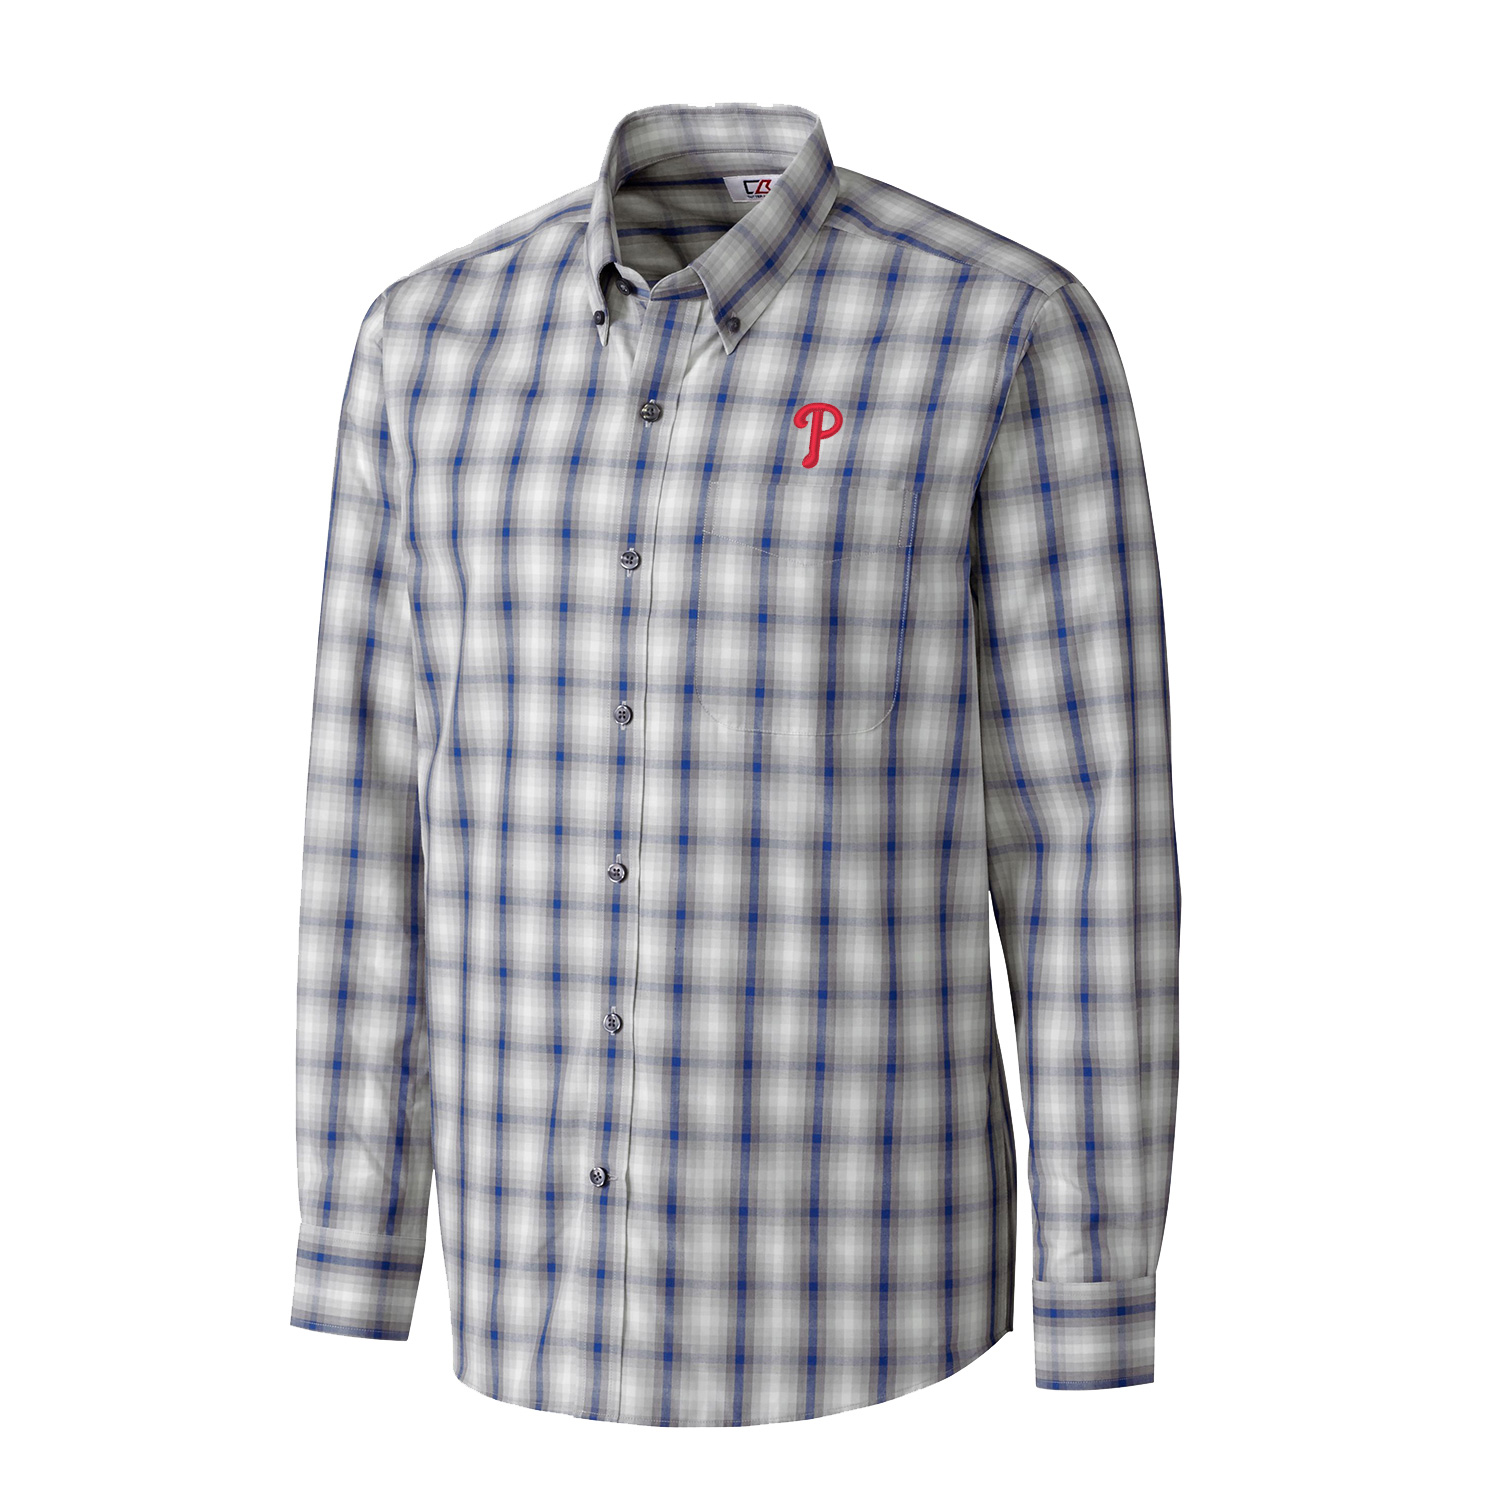 Philadelphia Phillies Cutter & Buck North Point Plaid Woven Long Sleeve Button-Down Shirt - Royal